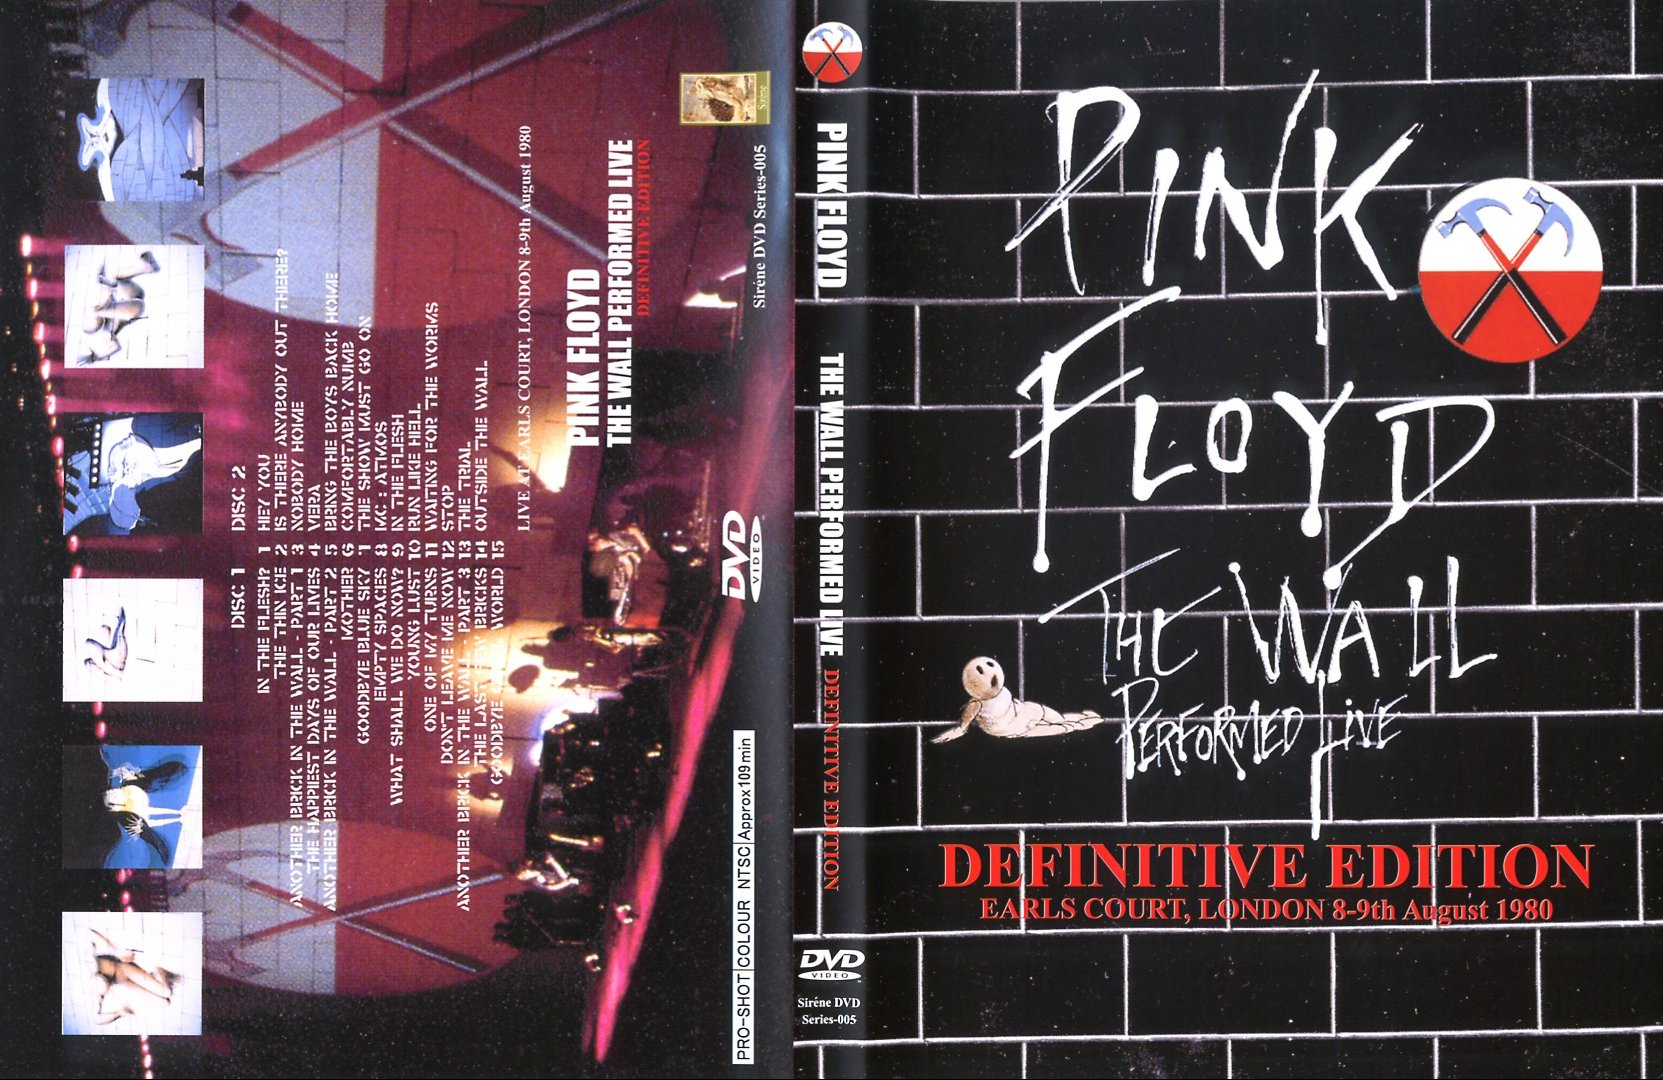 Luxury Roger Waters the Wall Dvd | About My Blog